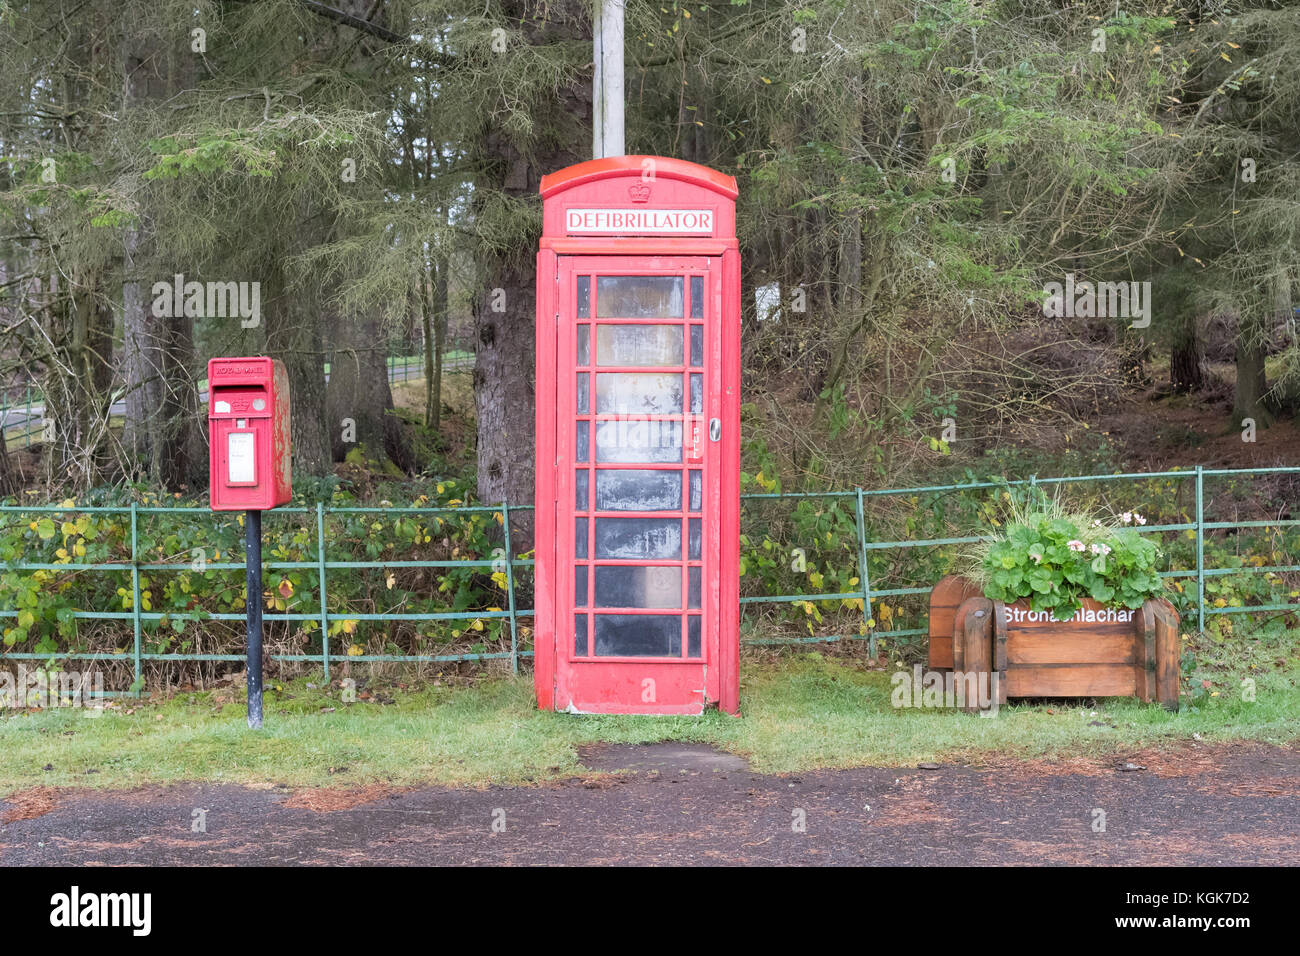 Defibrillator in red telephone box in remote location - Stronachlachar, Loch Lomond and the Trossachs National Park, - Stock Image